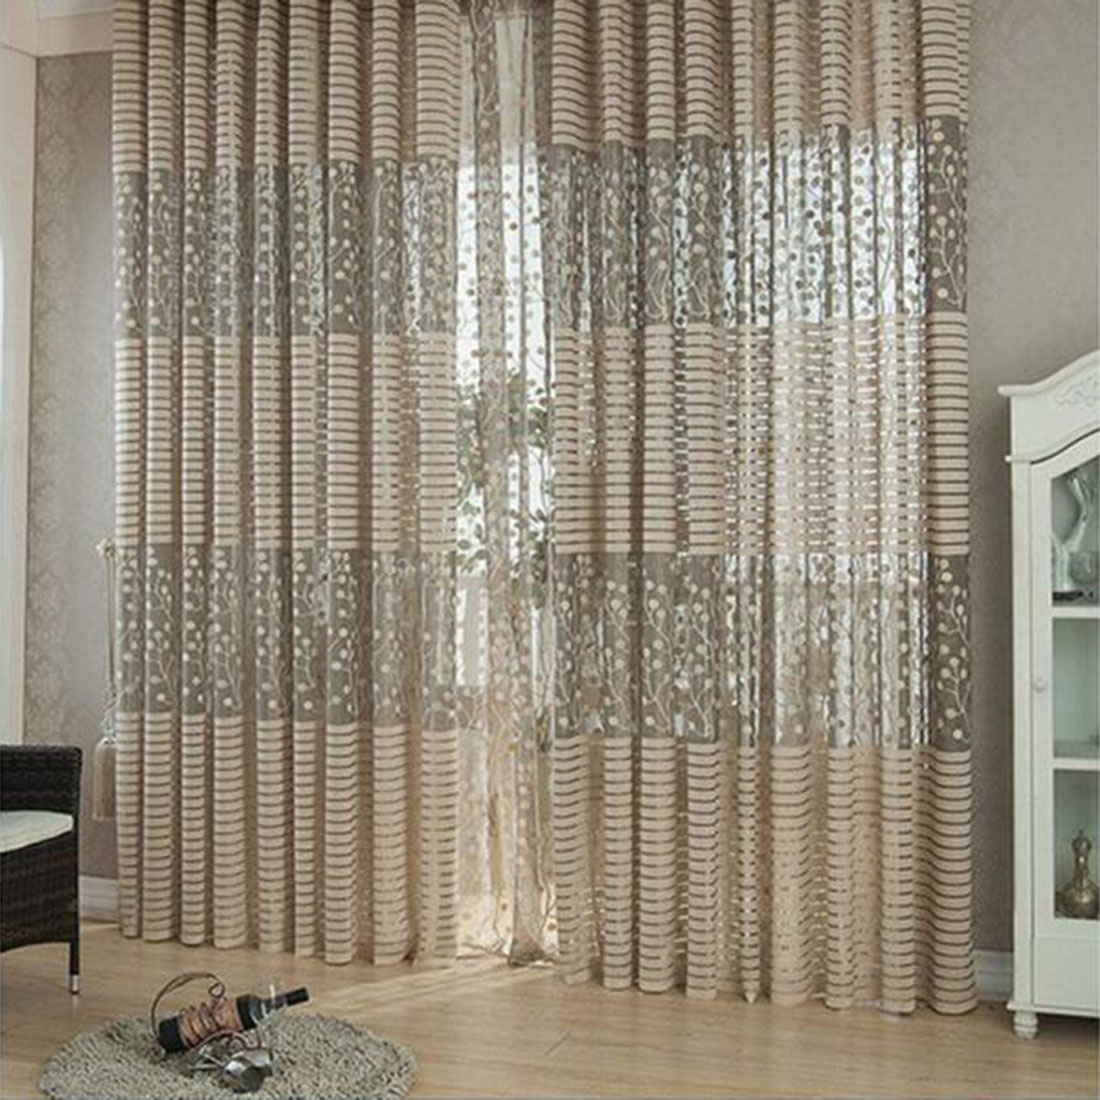 Modern Curtain Panels For Living Room Compare Prices On Modern Curtain Patterns Online Shopping Buy Low